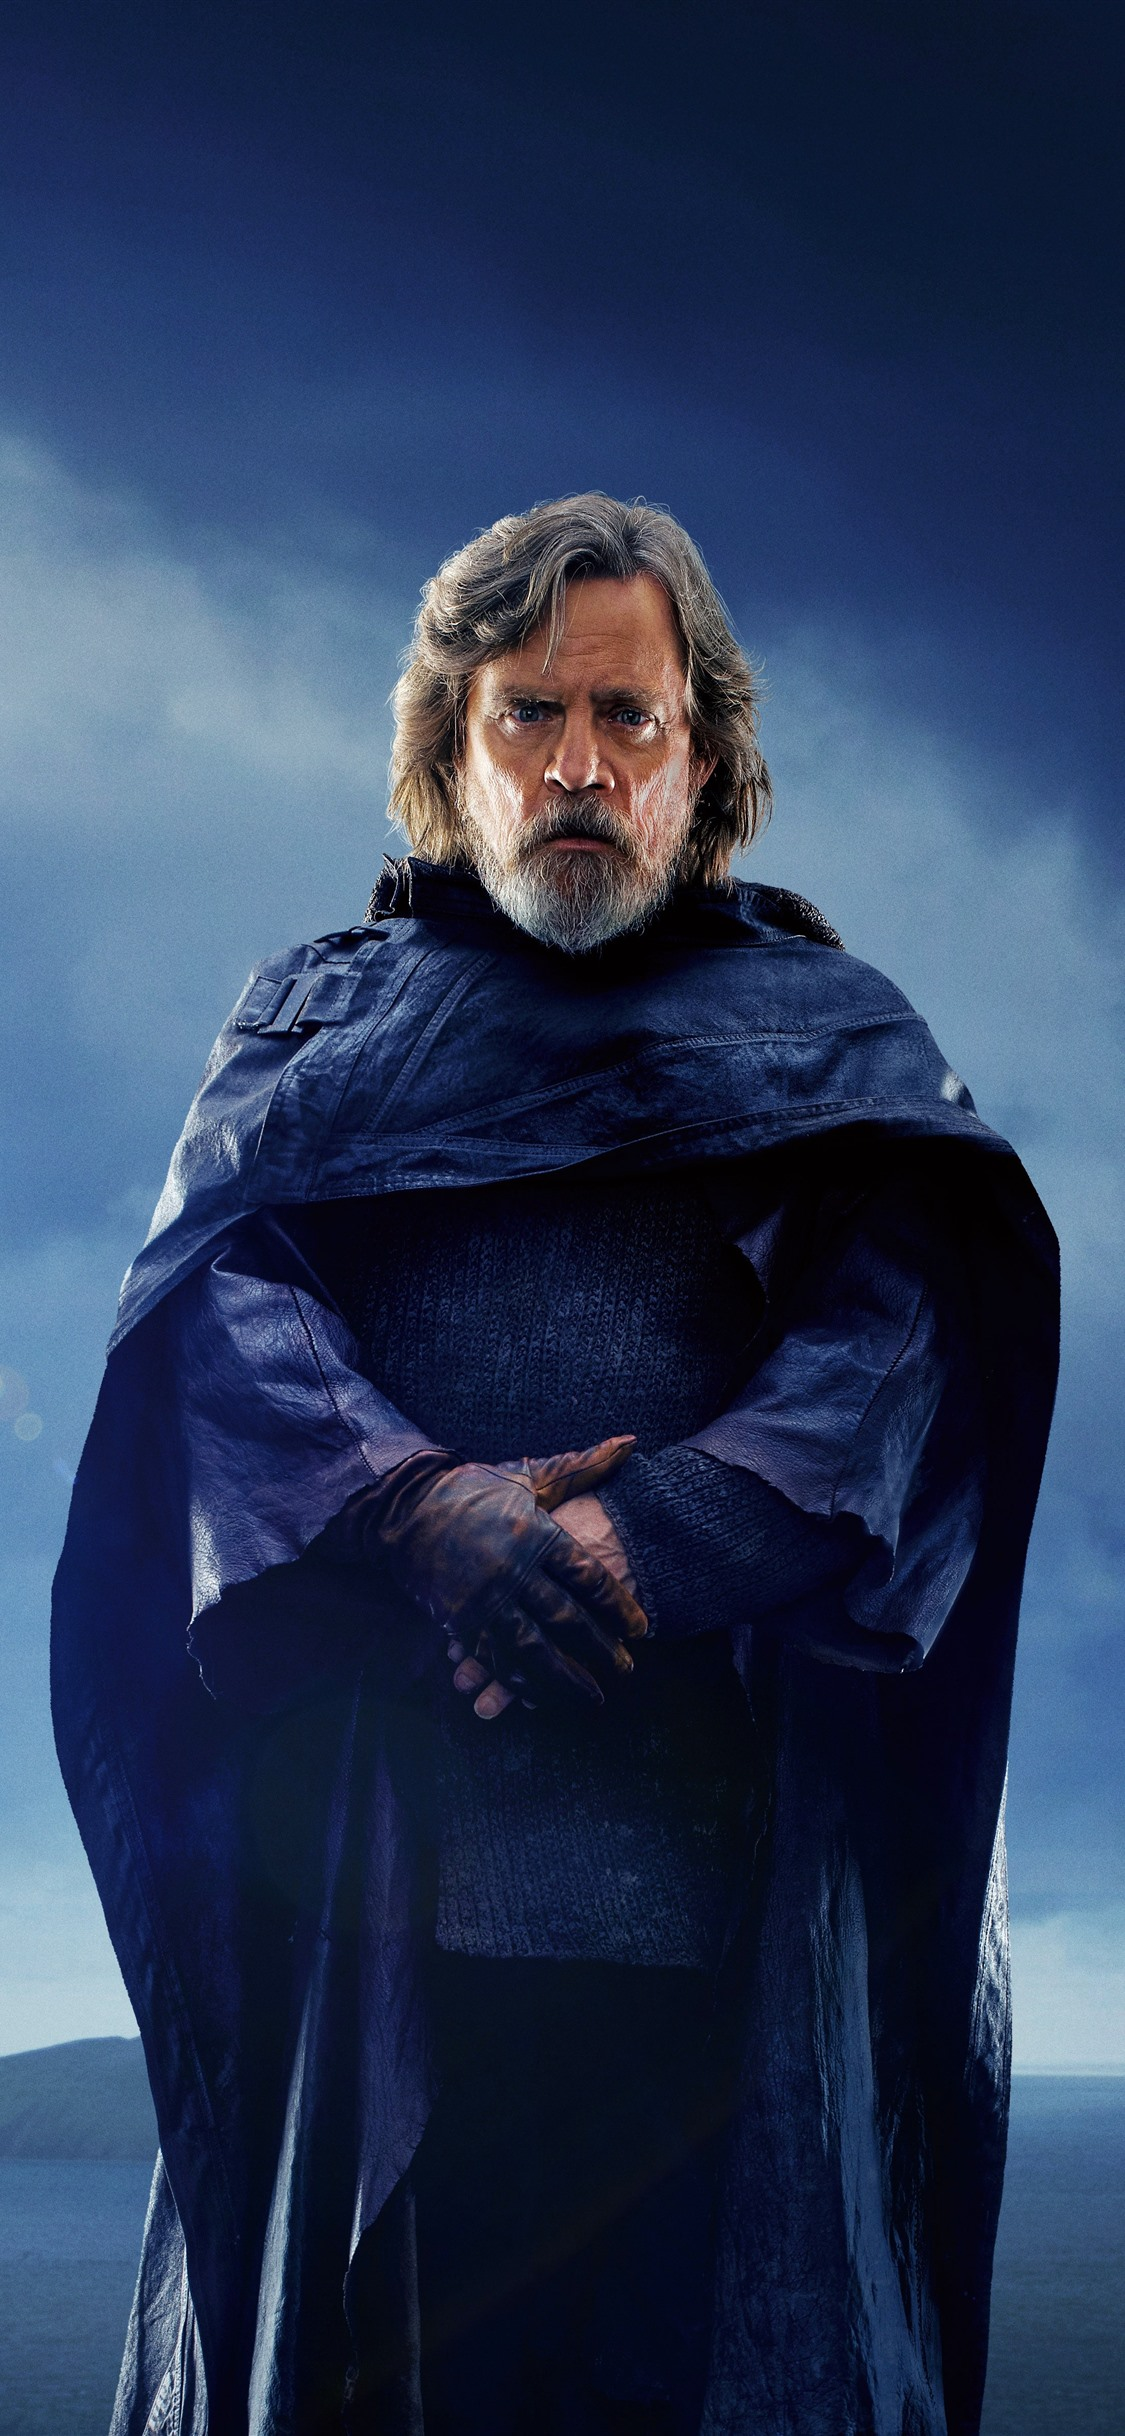 Luke Star Wars The Last Jedi 1242x2688 Iphone 11 Pro Xs Max Wallpaper Background Picture Image